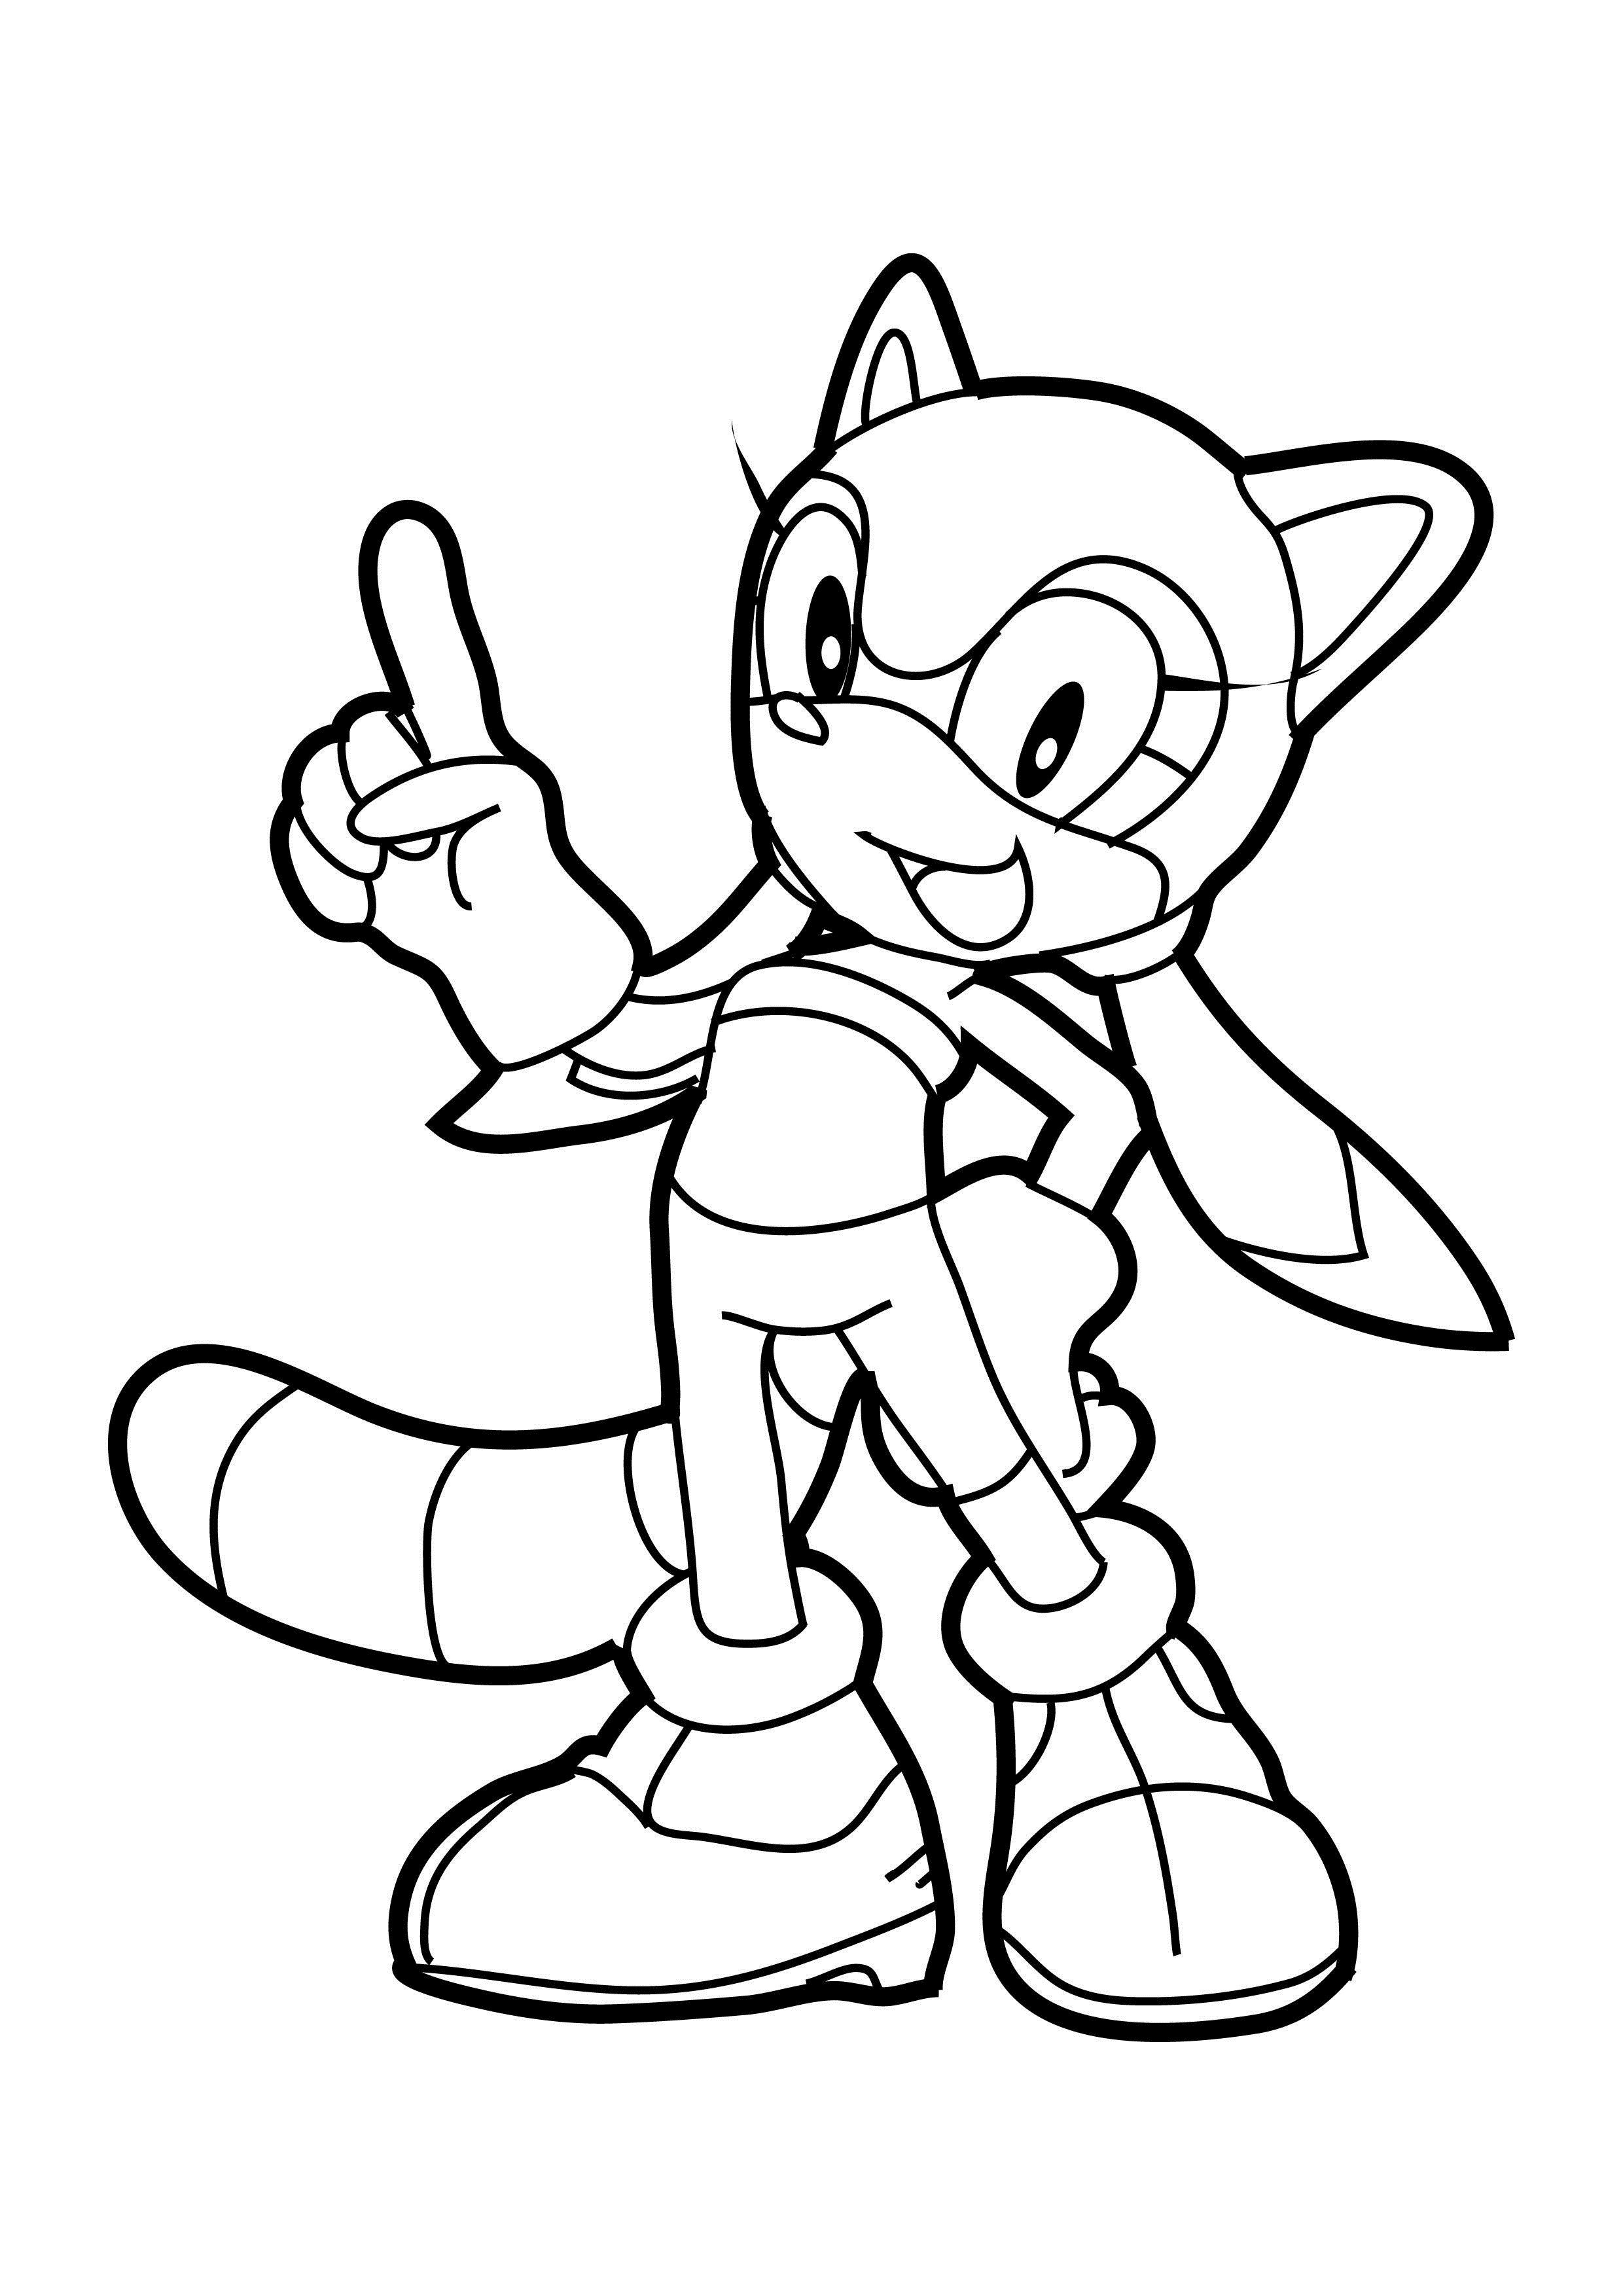 Sonic Coloring Page Free Printable Sonic The Hedgehog Coloring Pages Save New Book Of